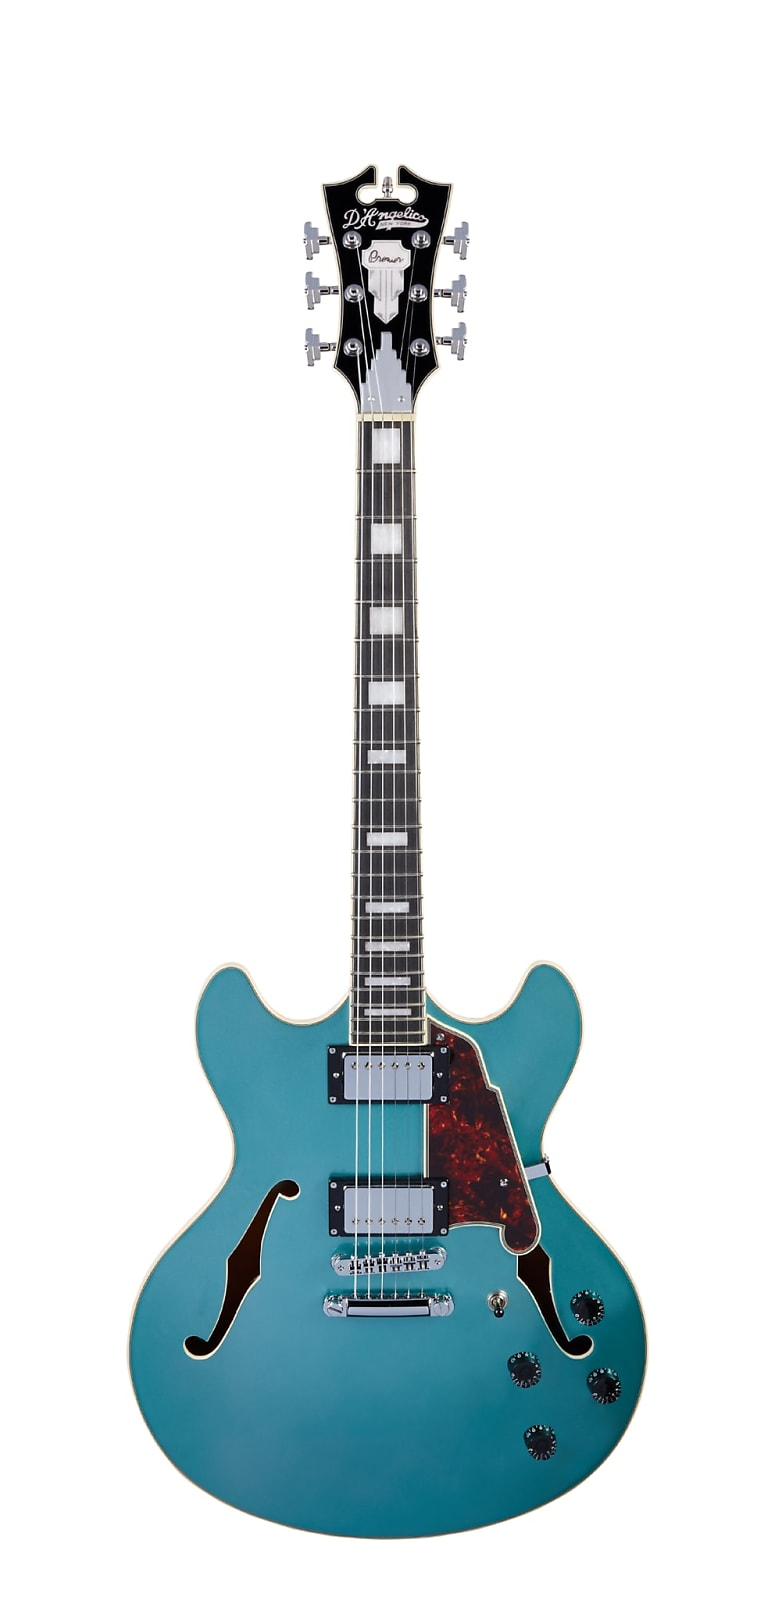 D'Angelico Premier DC Double-Cutaway Semi-Hollow Body in Ocean Turquoise w/ Gig Bag